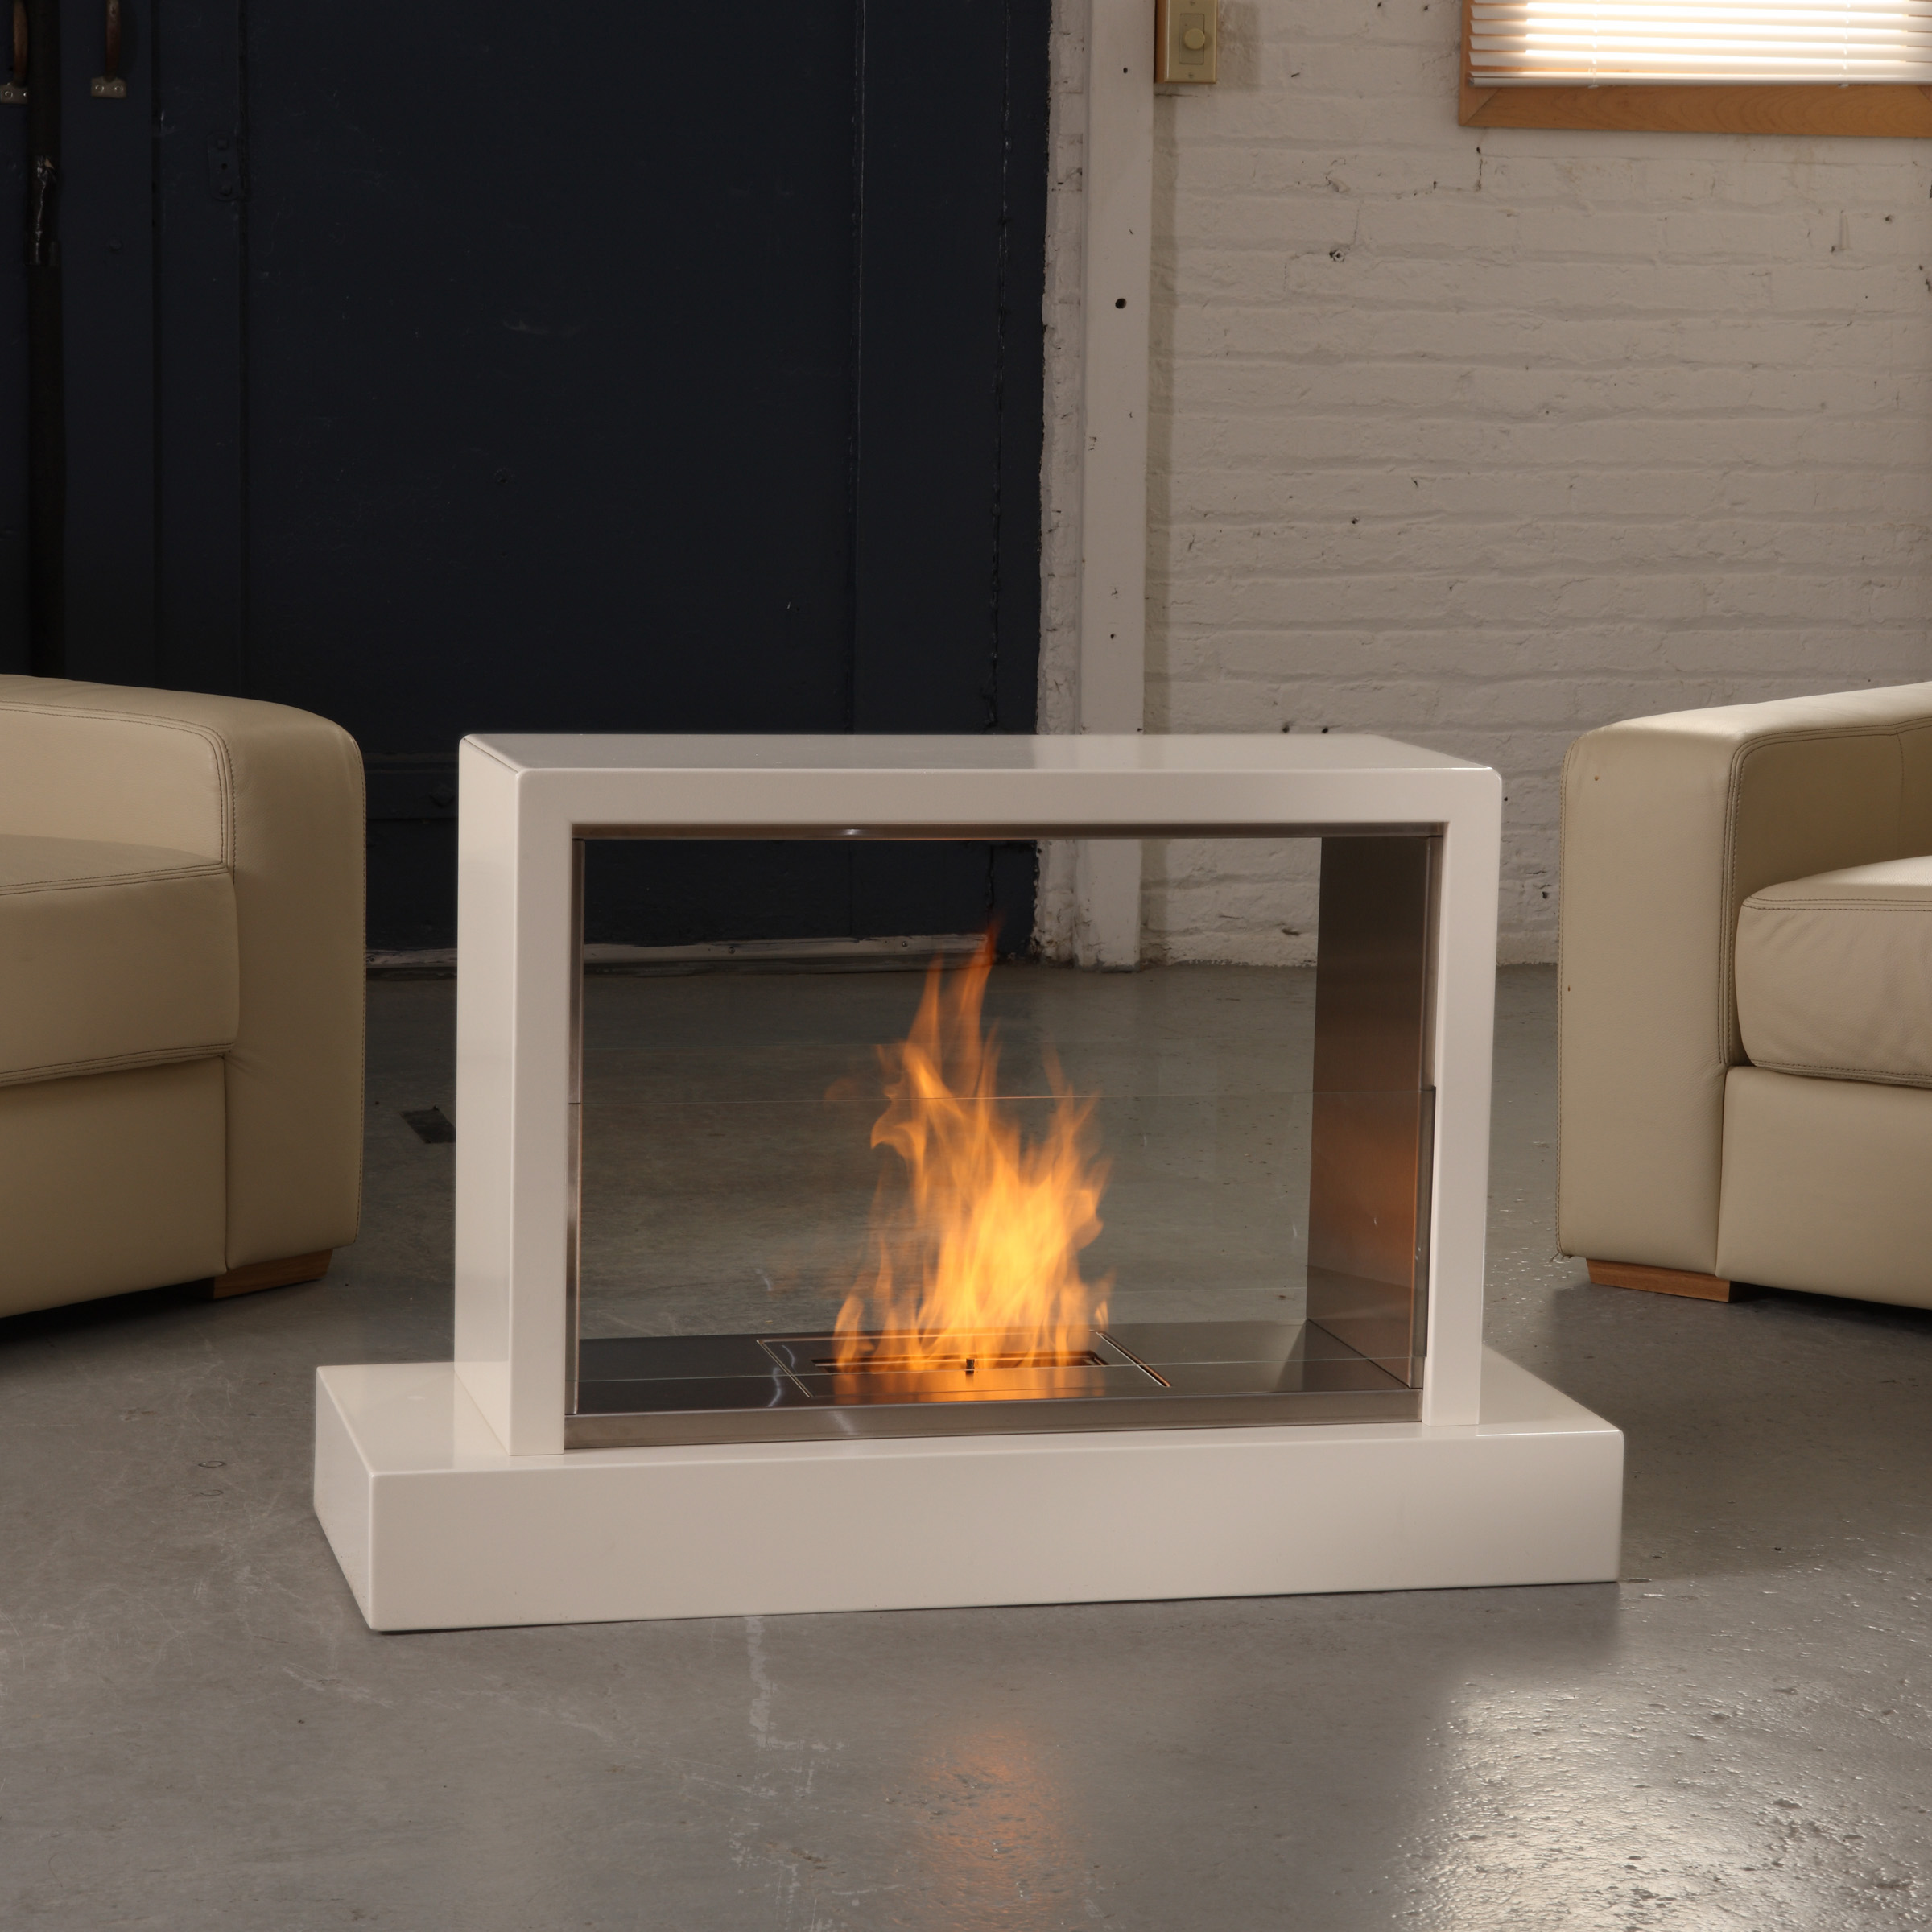 Gas Vs Electric Fireplace Pros And Cons Portable Electric Fireplace Indoor Fireplace Design Ideas